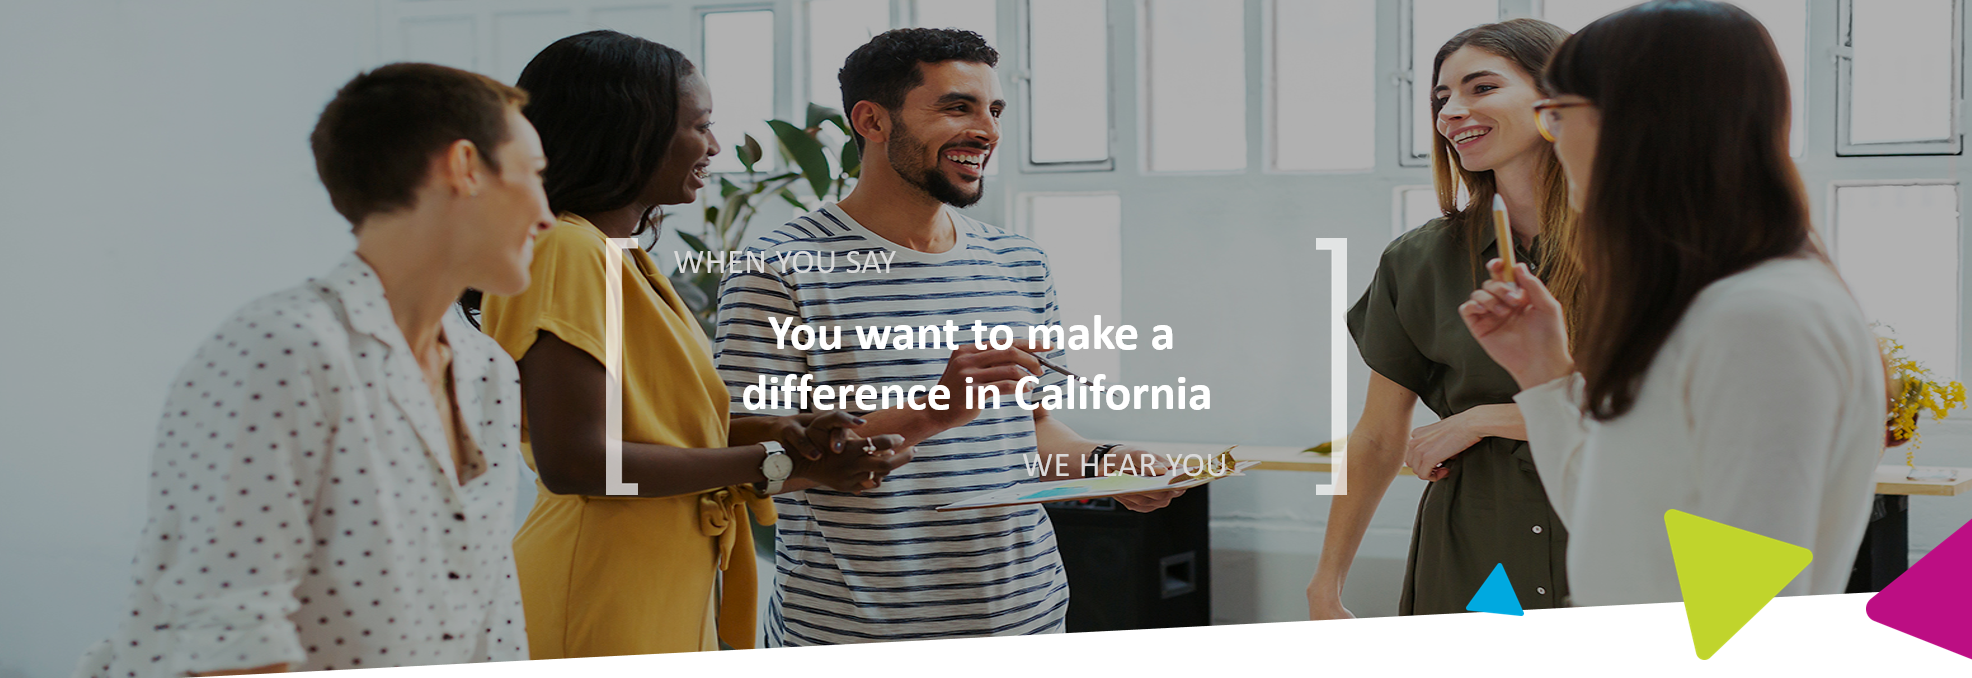 When you say you want to make a difference in California, we hear you